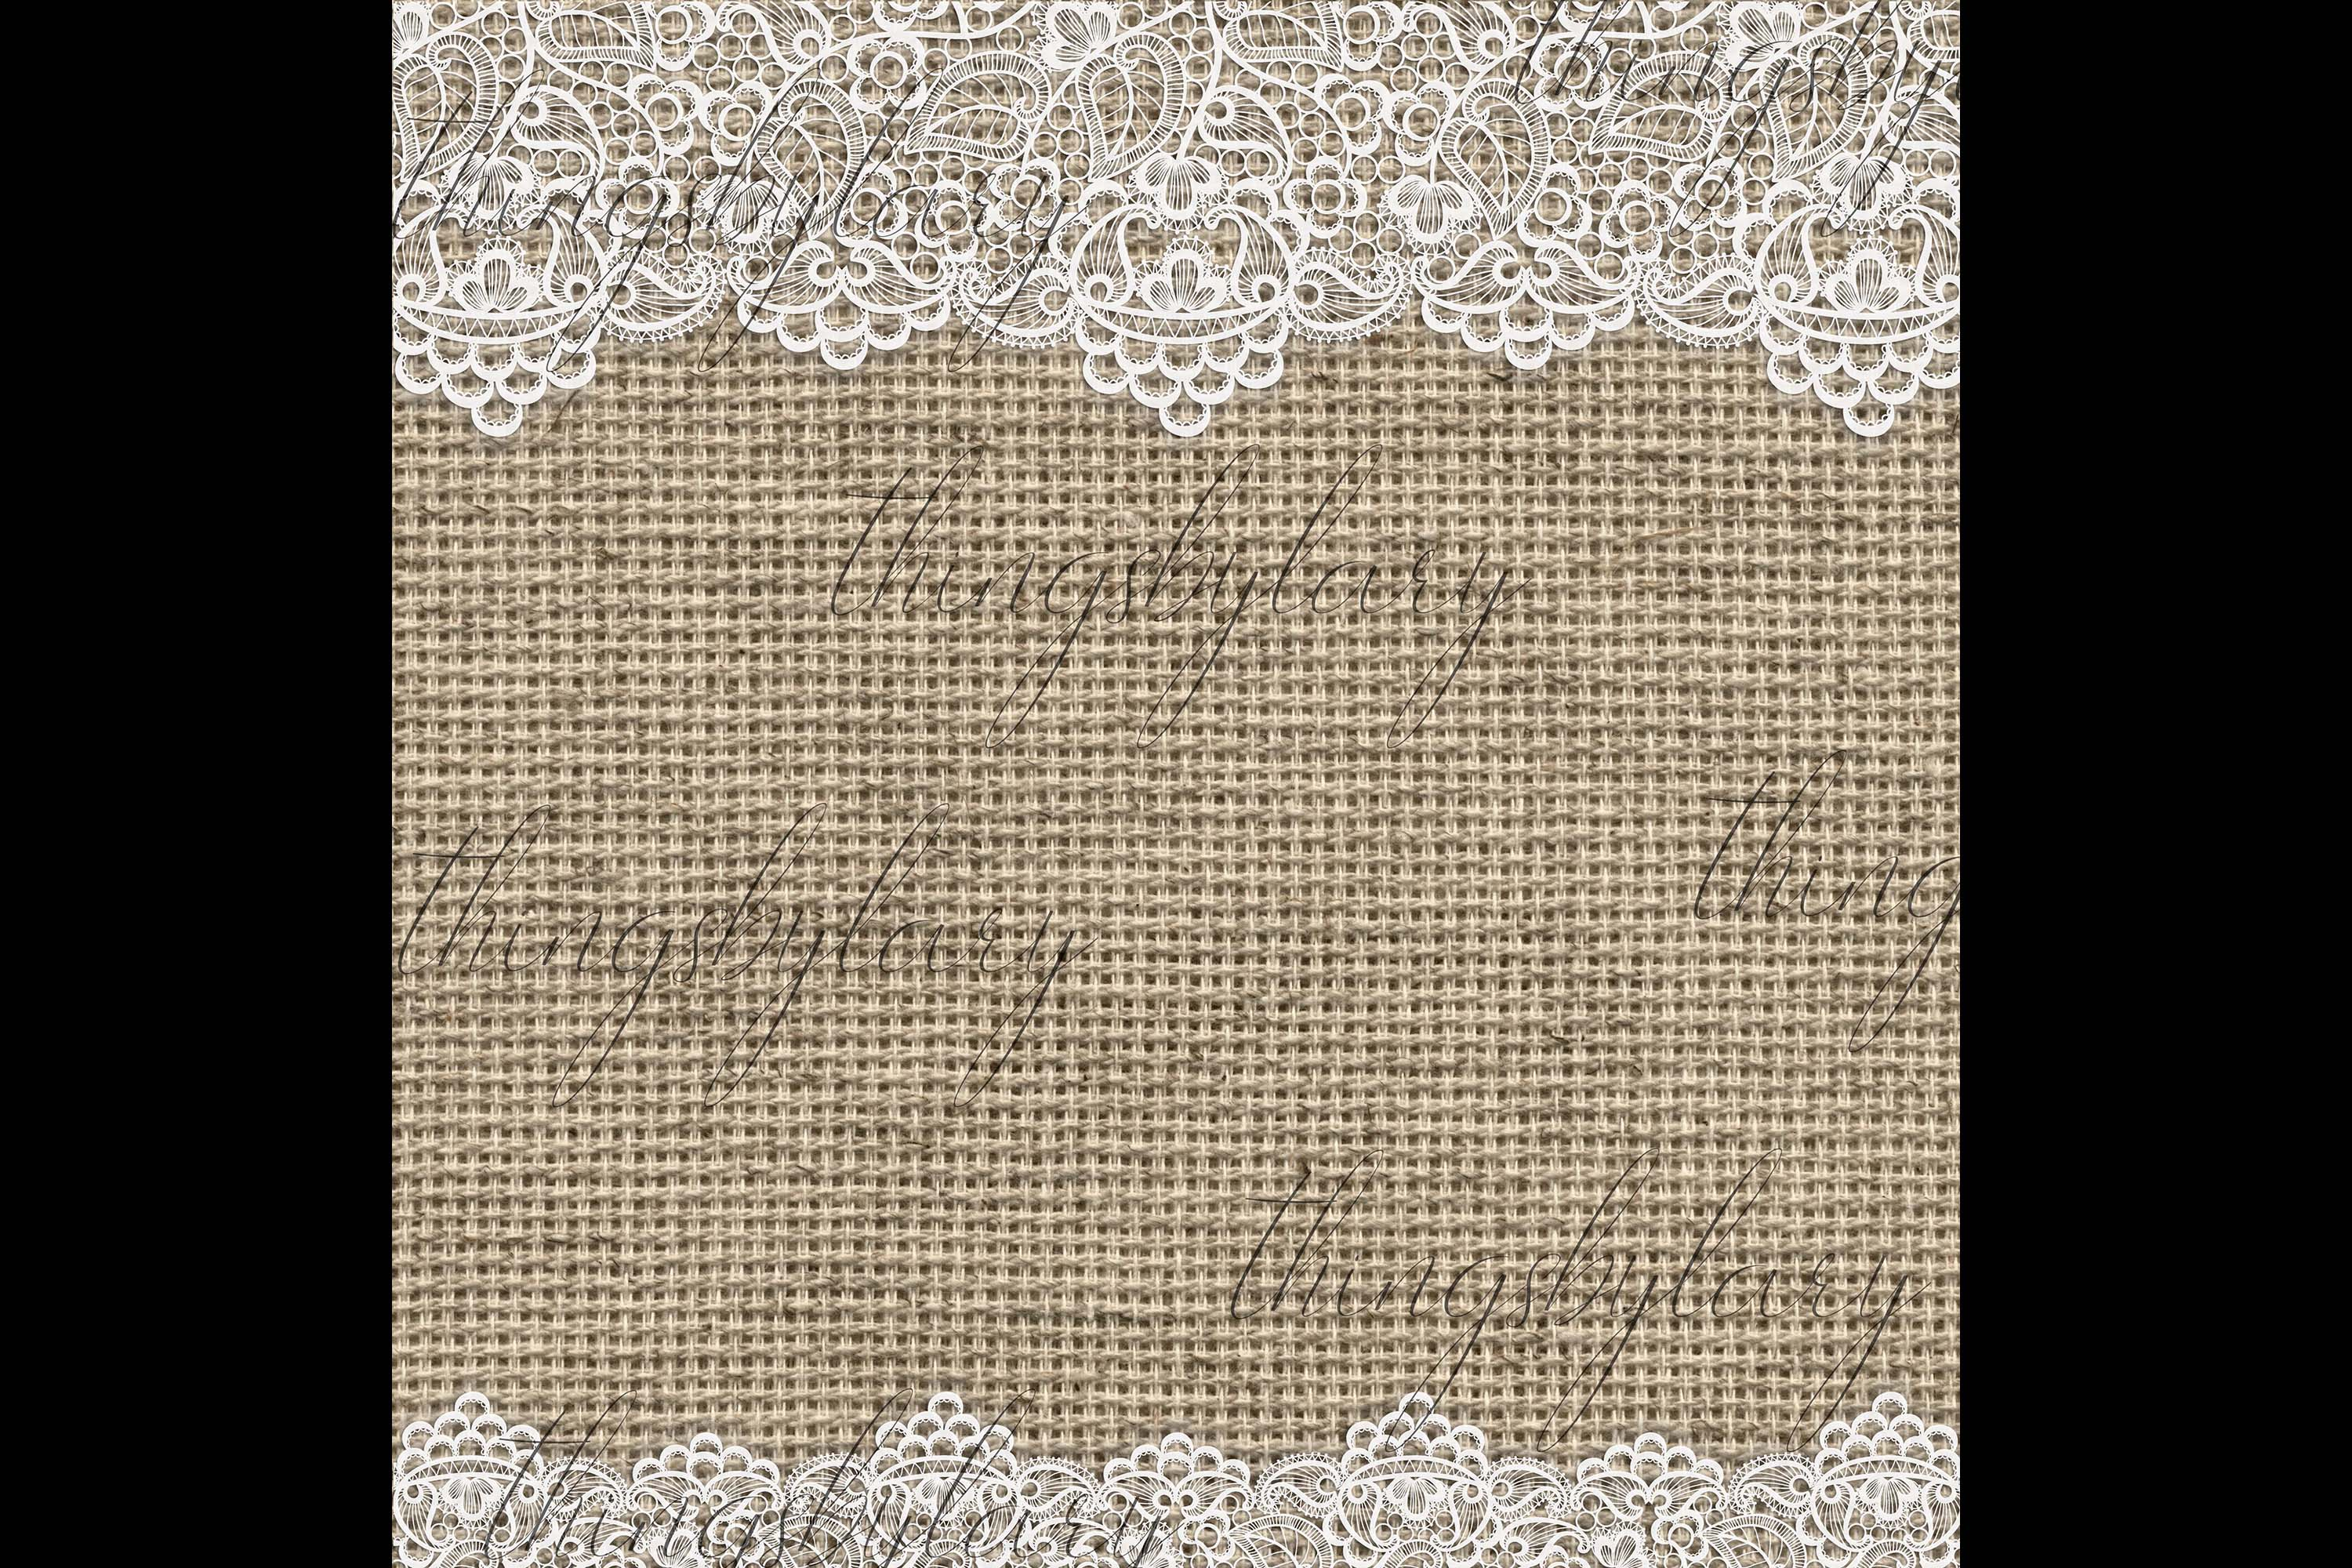 27 White Lace Border Frame Overlay Transparent Images PNG example image 5